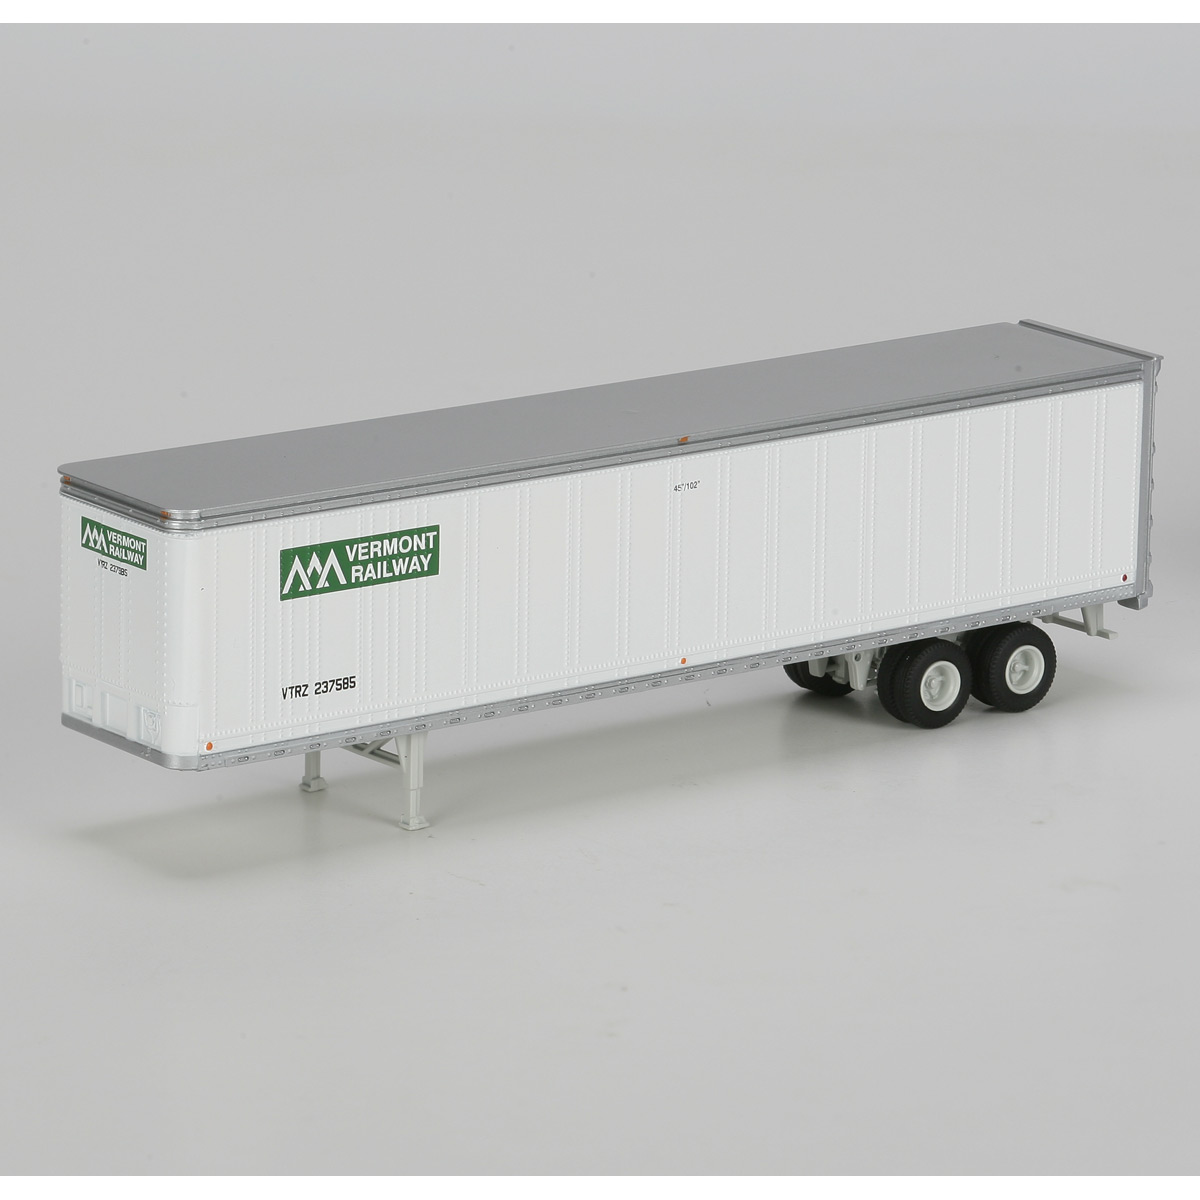 Athearn N Scale 3 Axle Tractor : Ho rtr trailer vtr ath athearn trains